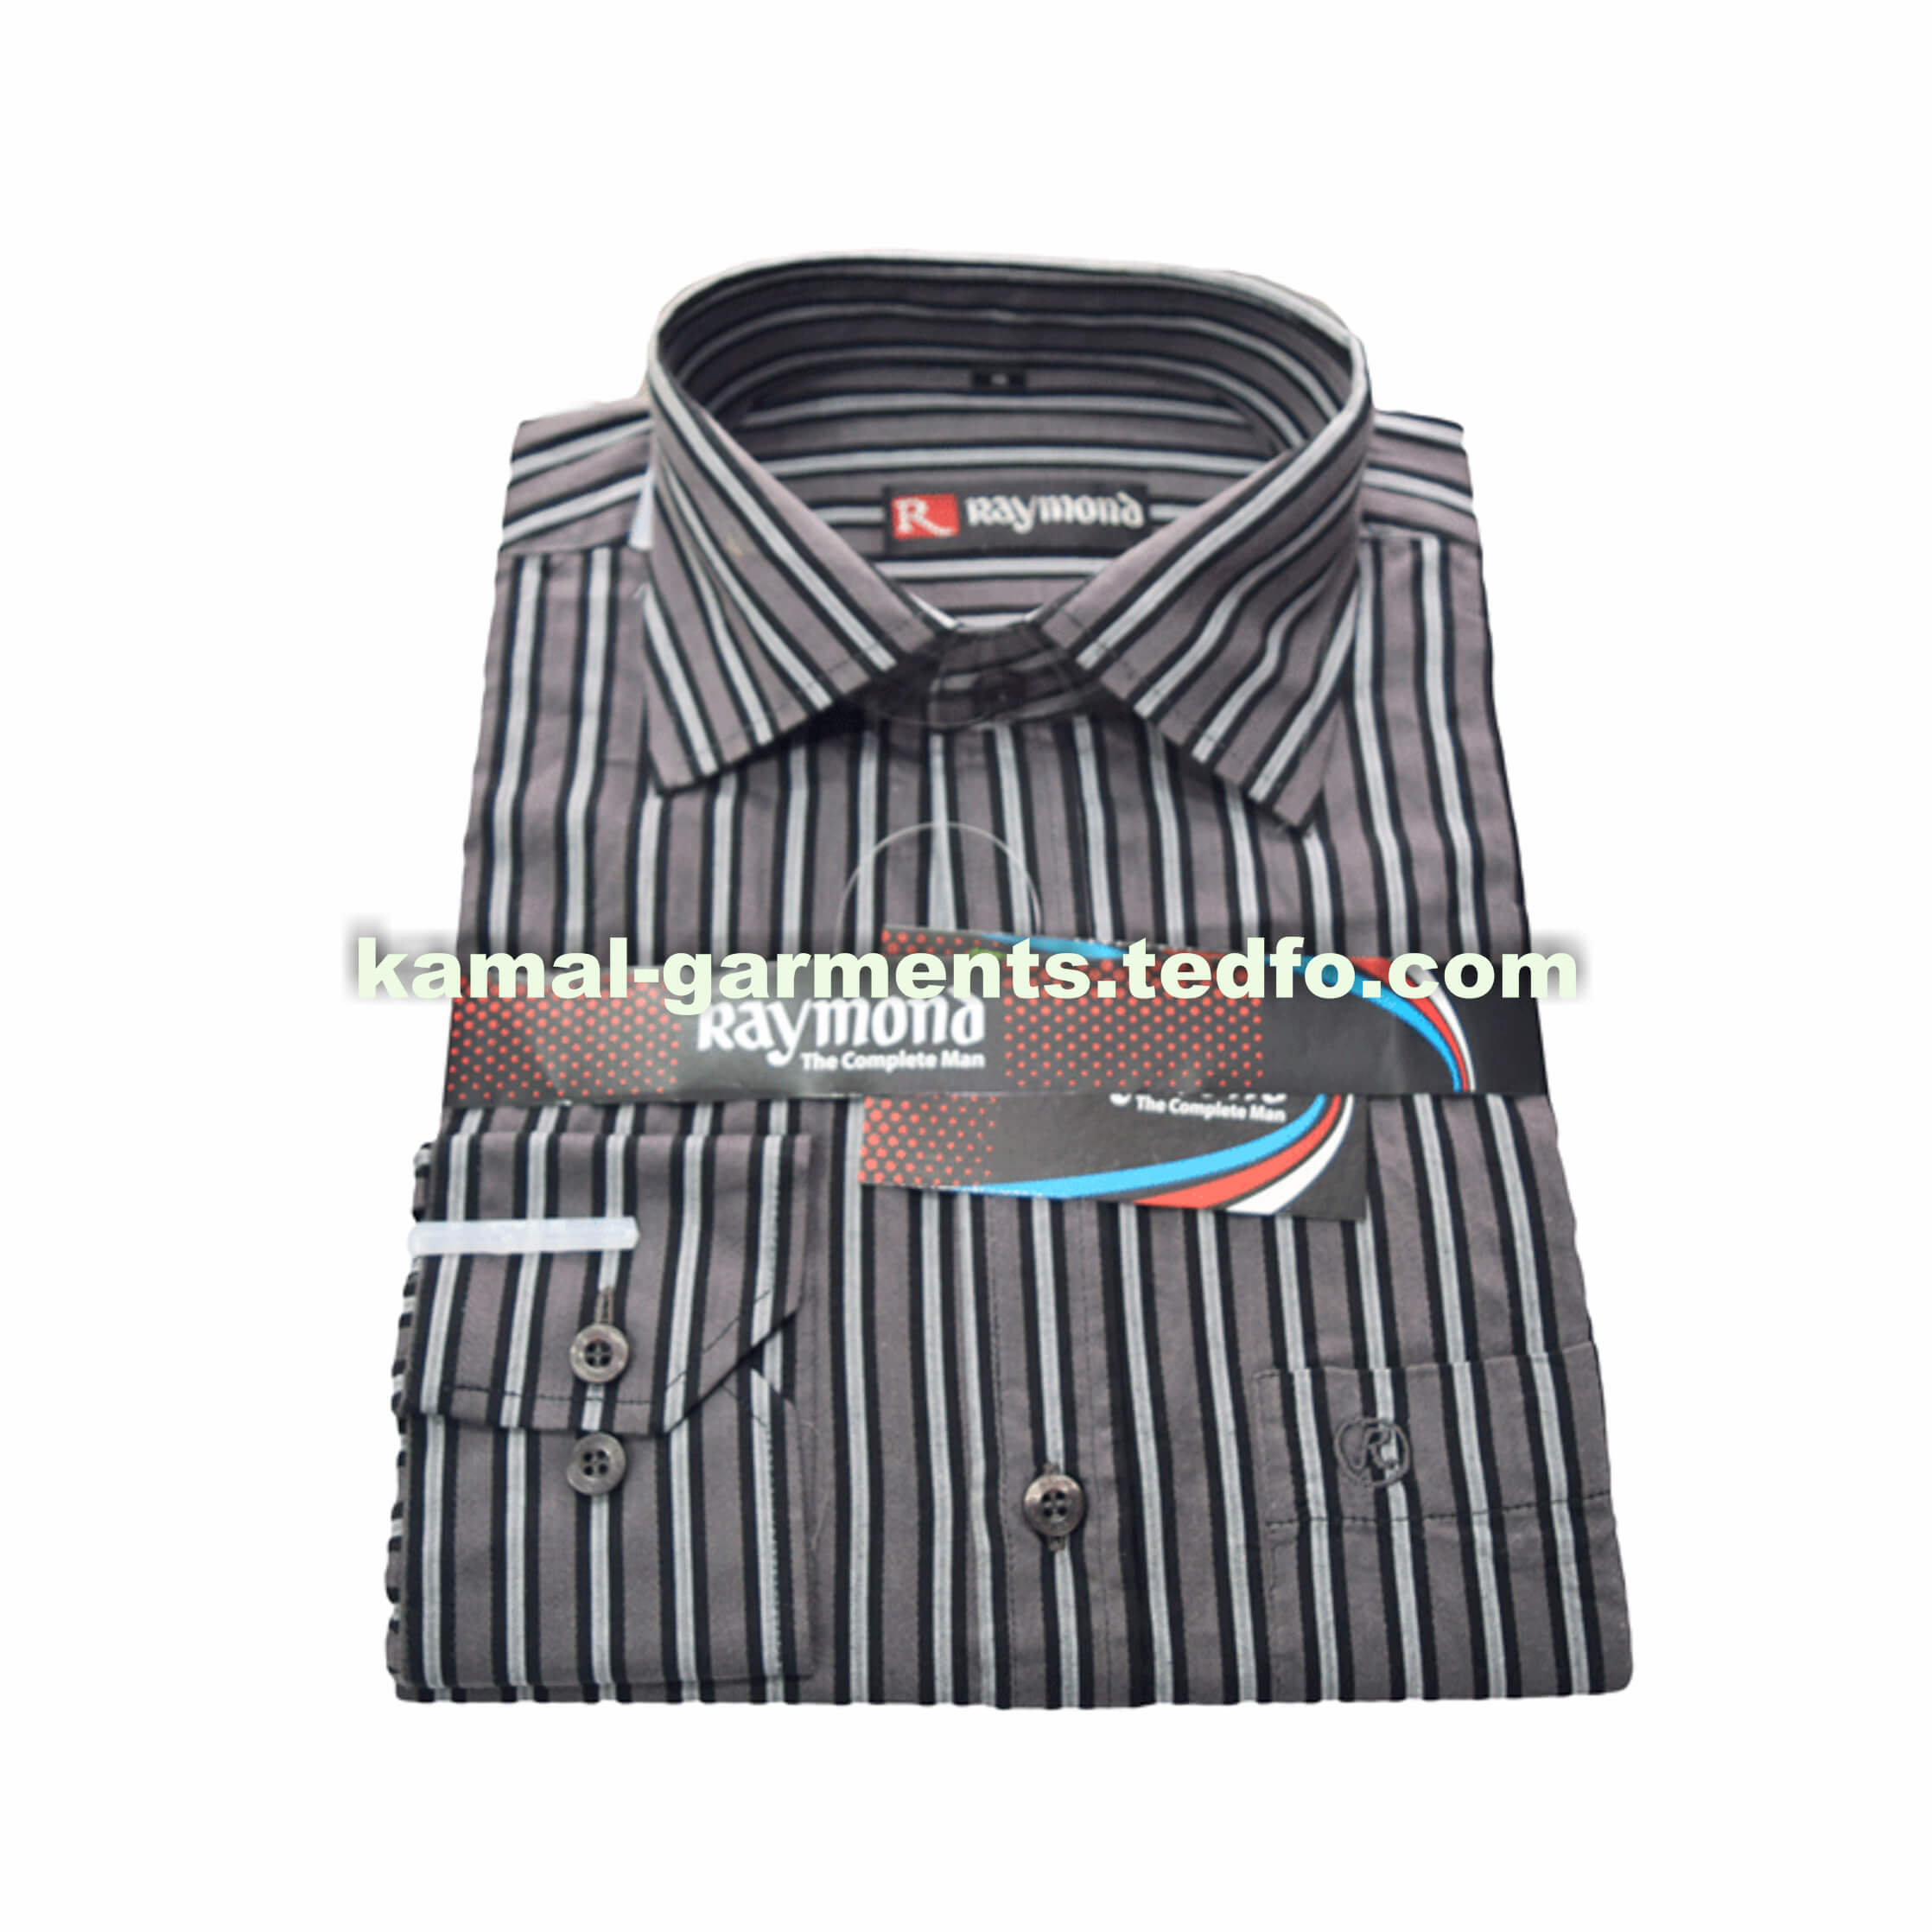 Ash Black White Striped Men's Long Sleeve Formal Shirt